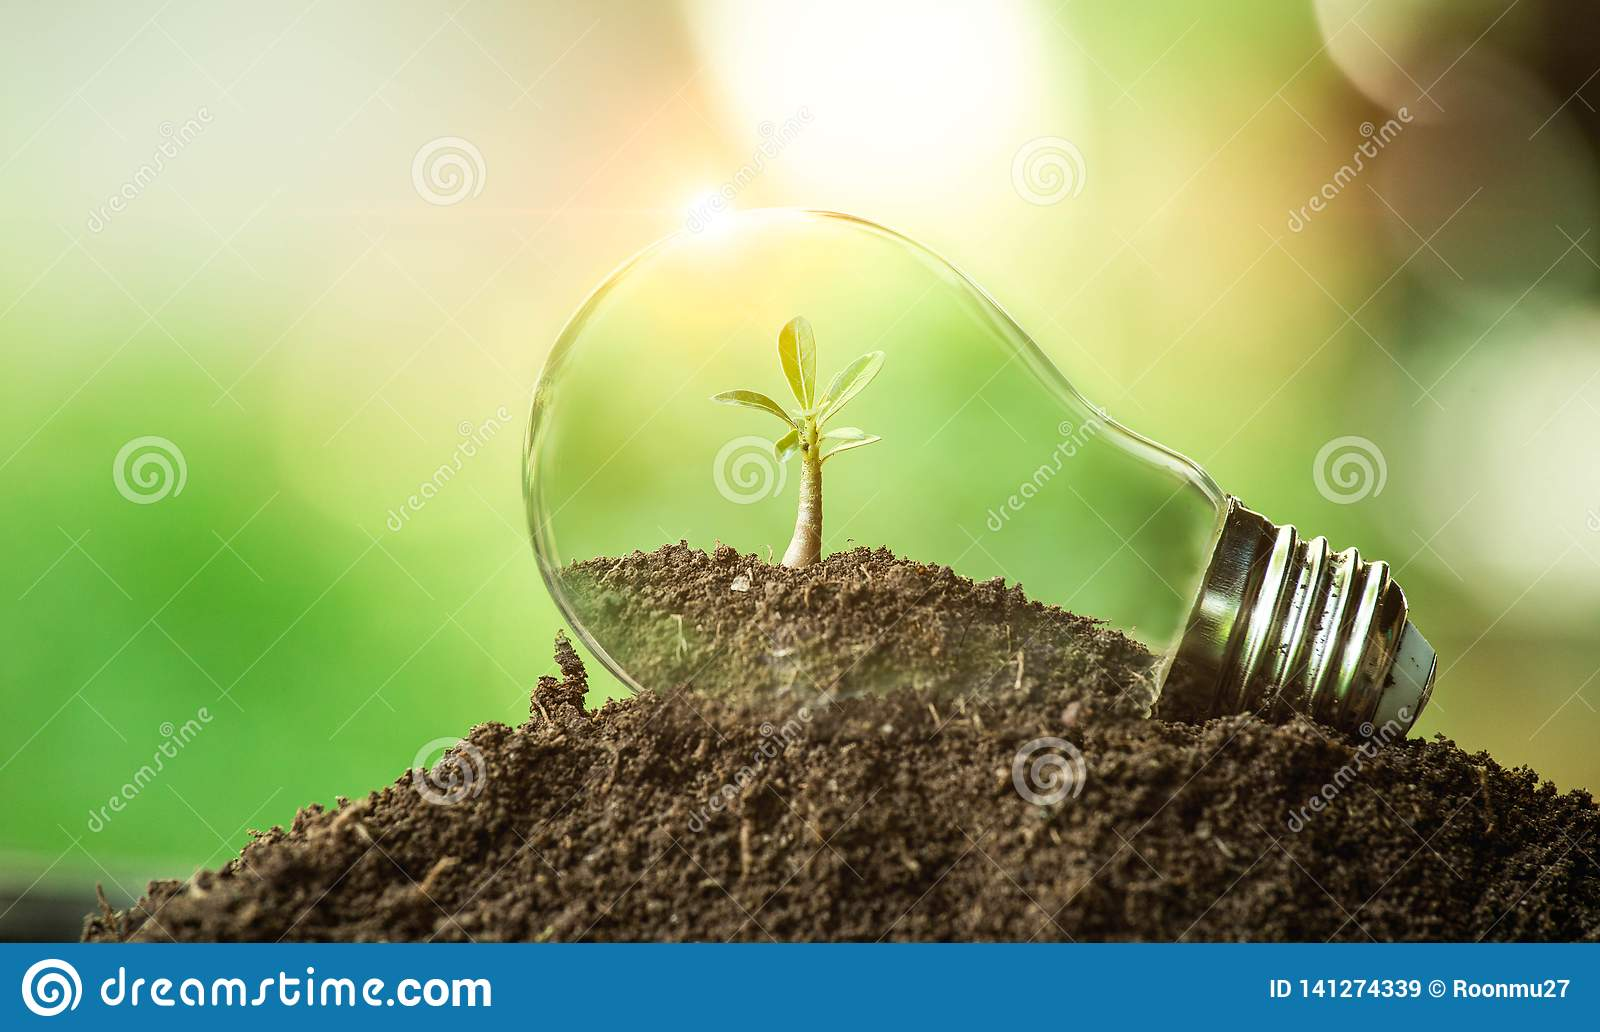 The tree growing on the soil in a light bulb.Creative idea of earth day or save energy and environment concept